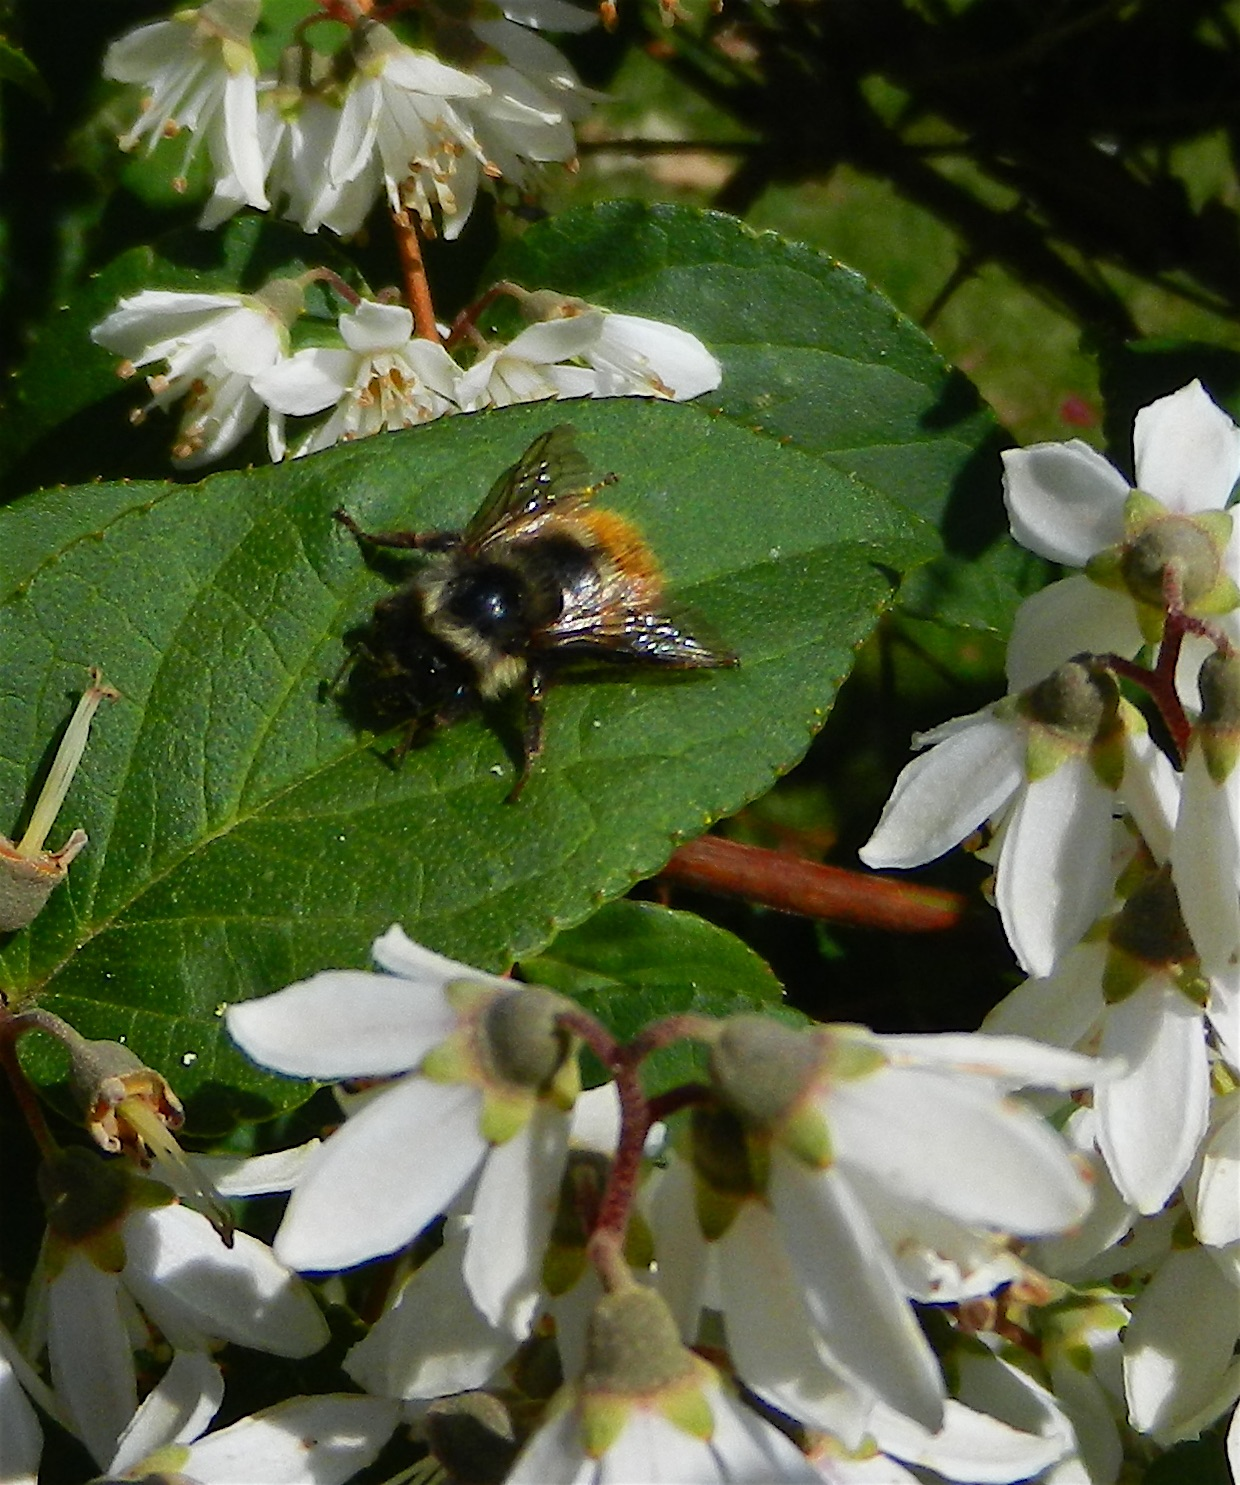 Today the bees preferred the shrub Deutzia gracilis